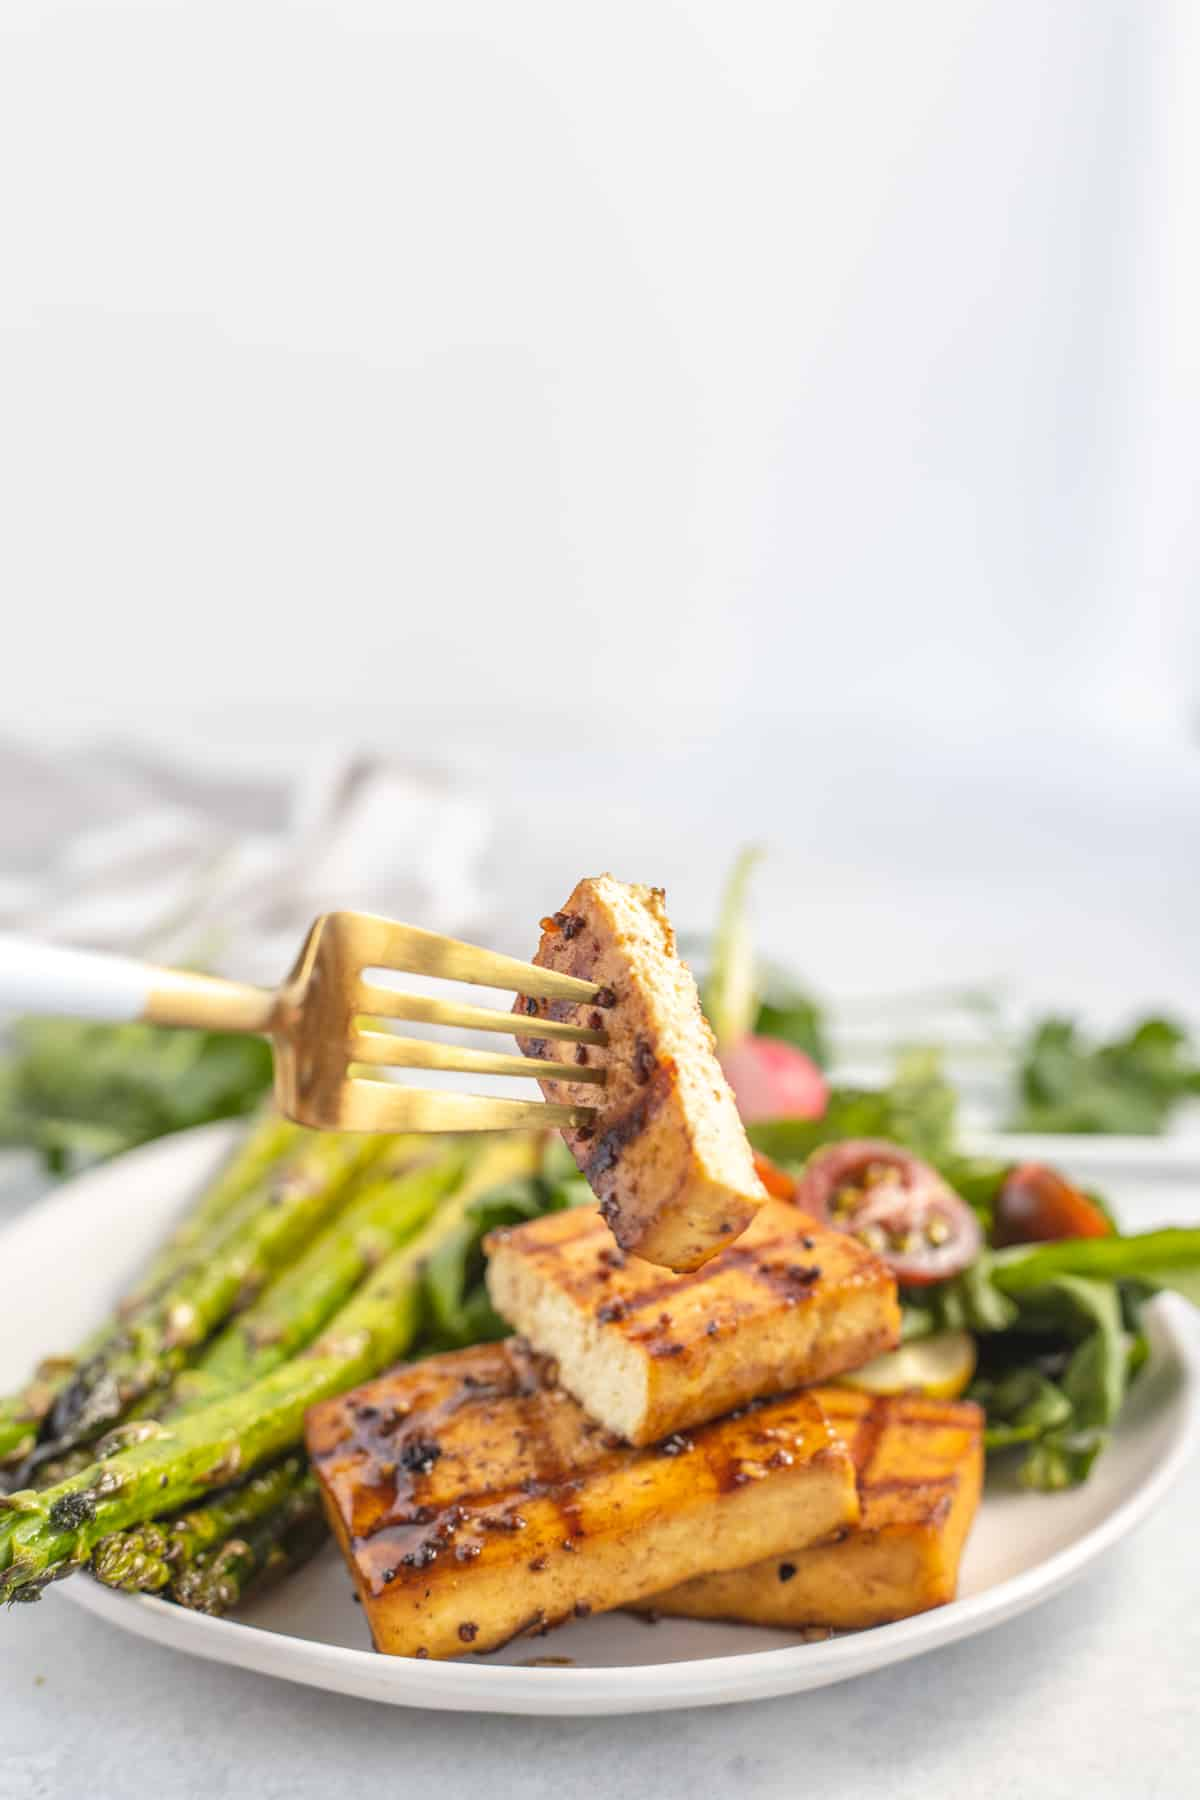 Fork with a bite of grilled tofu